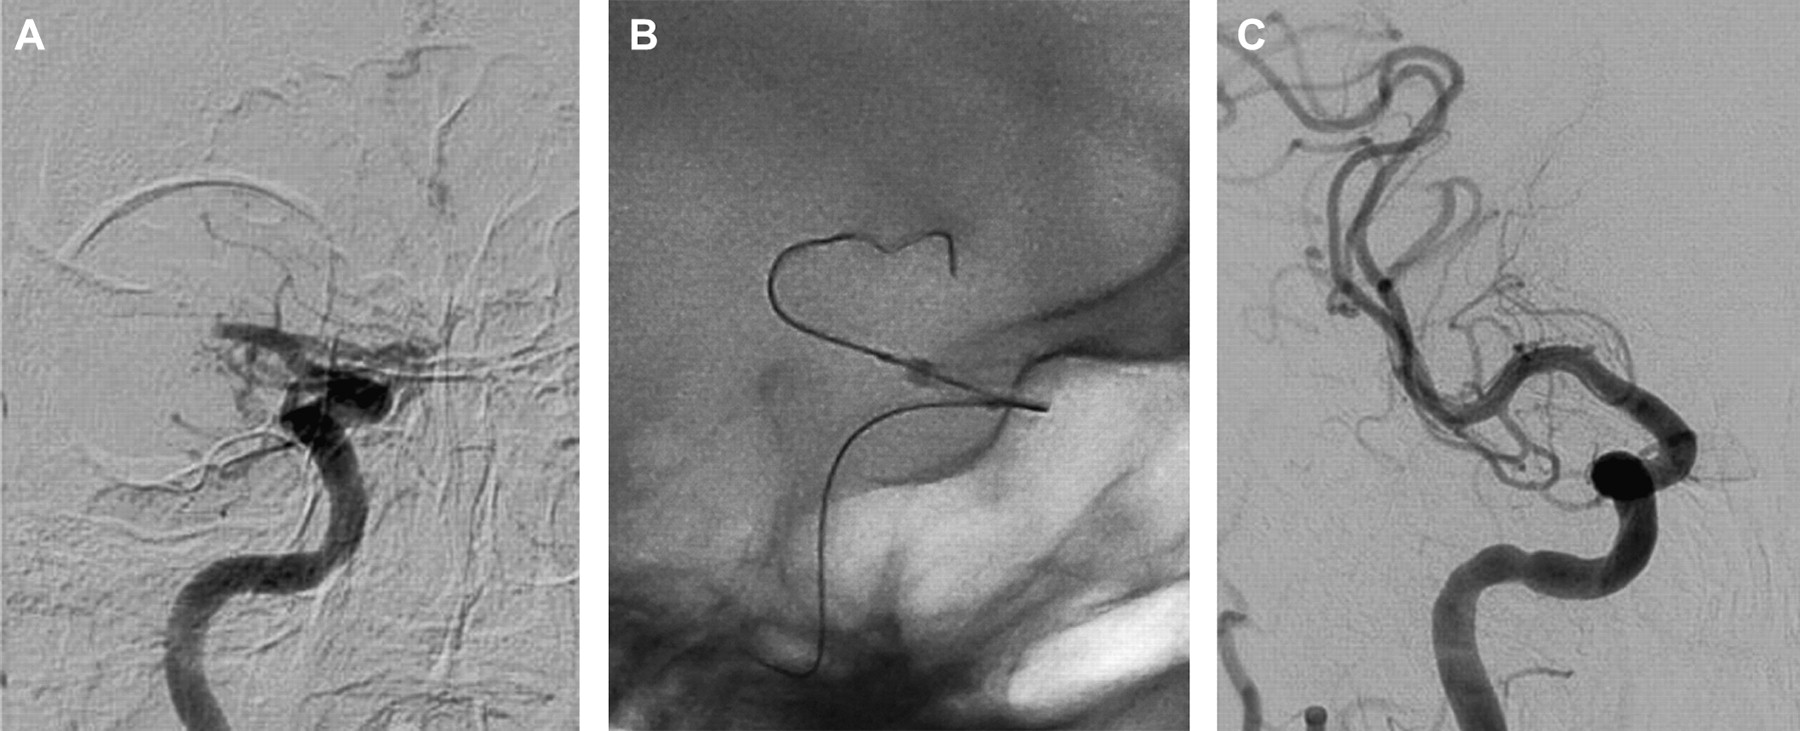 The Penumbra Stroke System: a technical review | Journal of